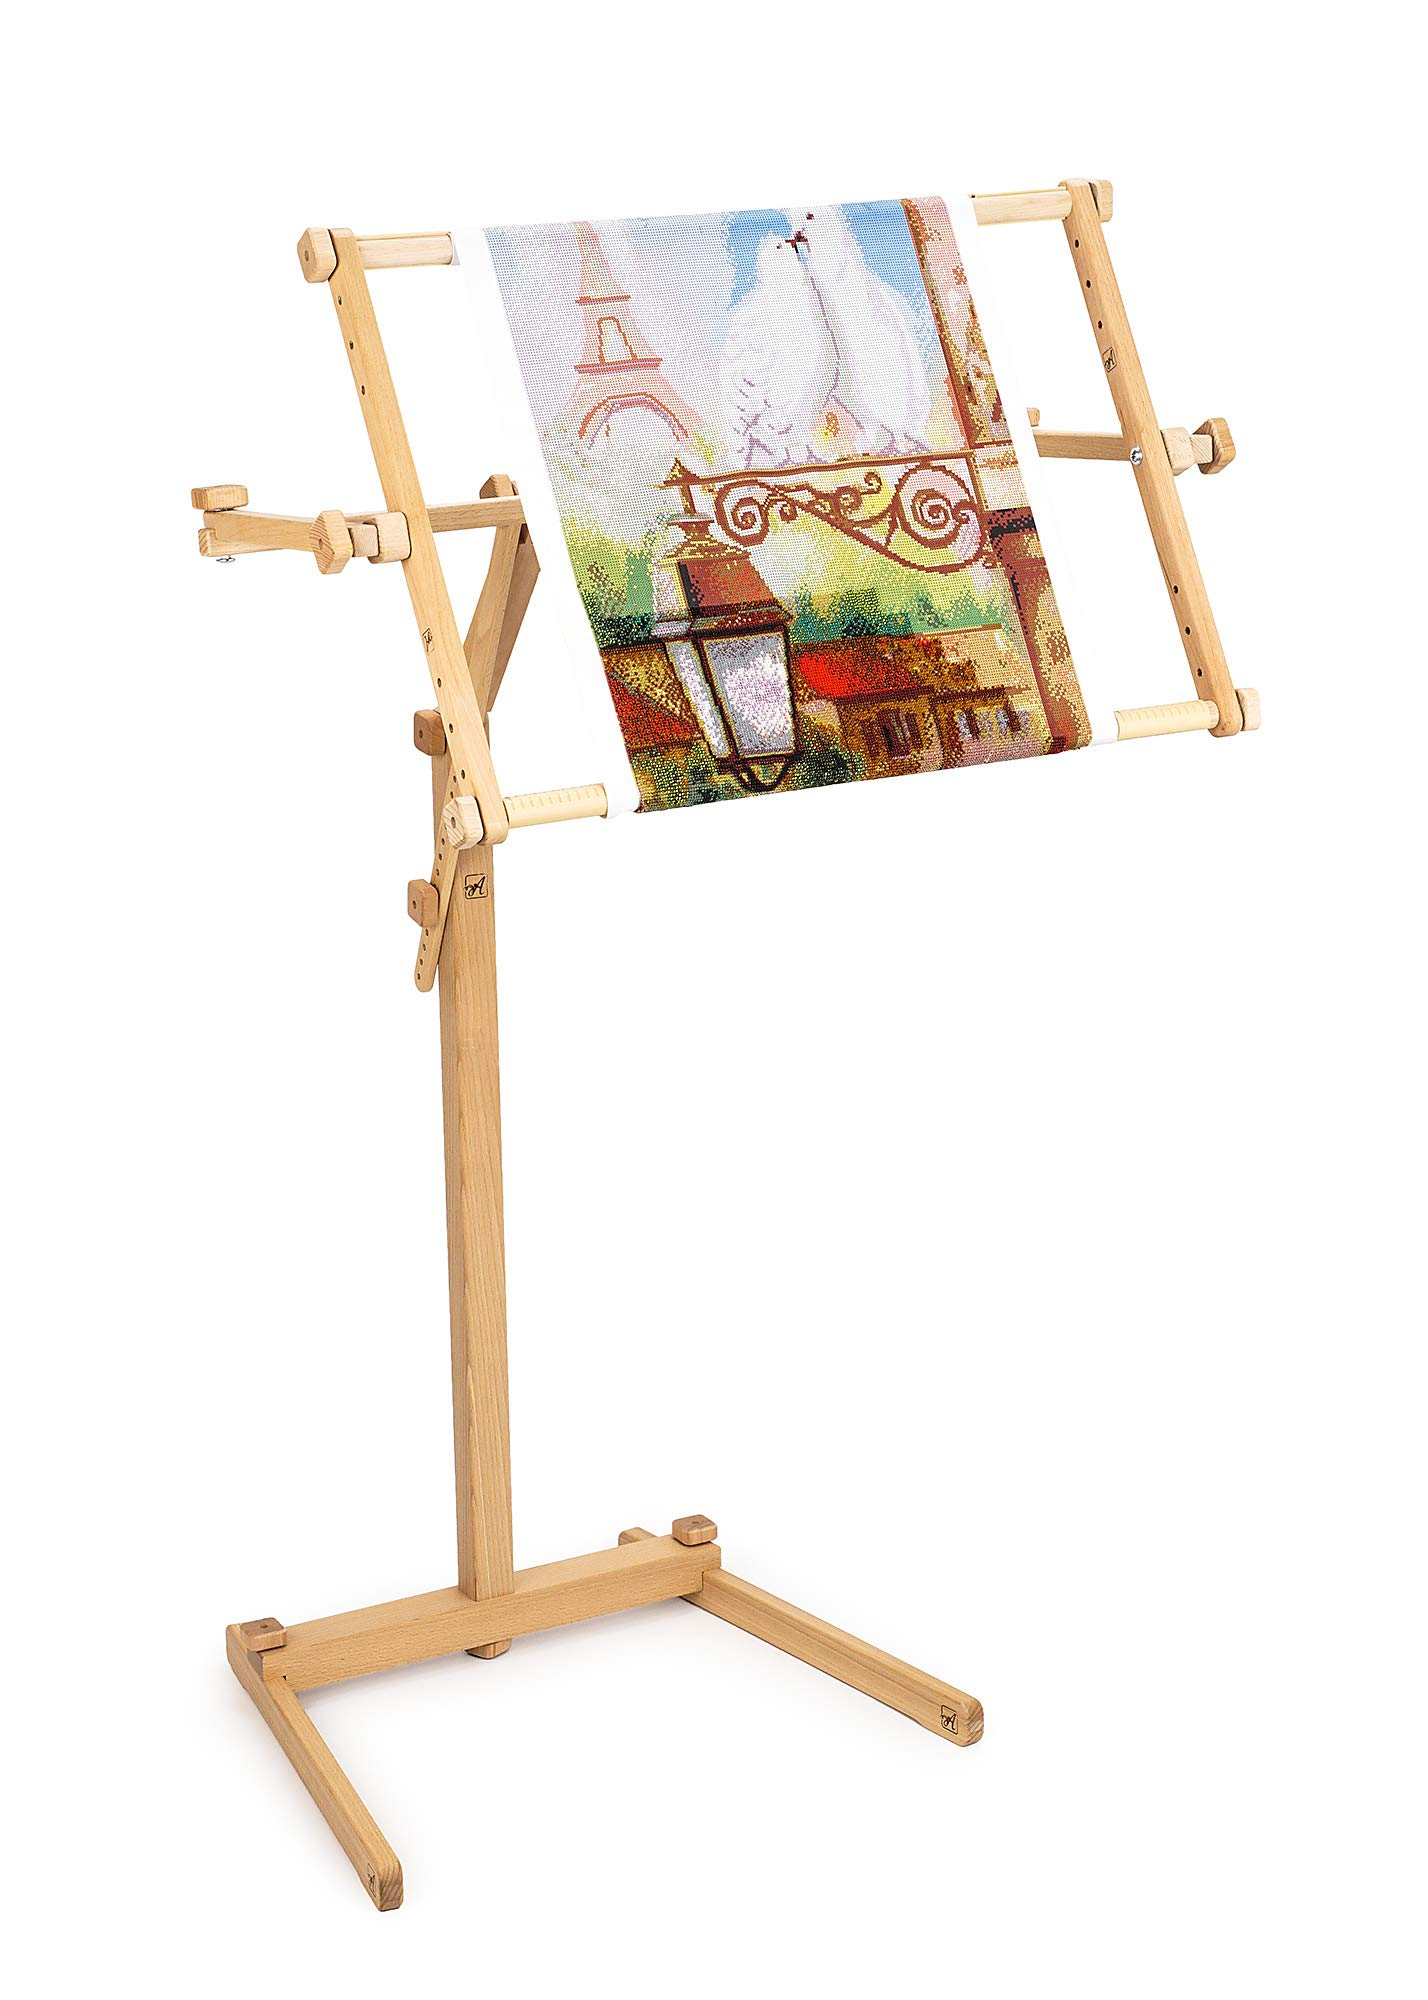 Needlework Floor-Standing Type Stand with Adjustable Frame Made of Organic Beech Wood Tapestry Cross Stitch Embroidery Frame Holder (15.7'' x 22'') by AllAboutEmbroideryUA